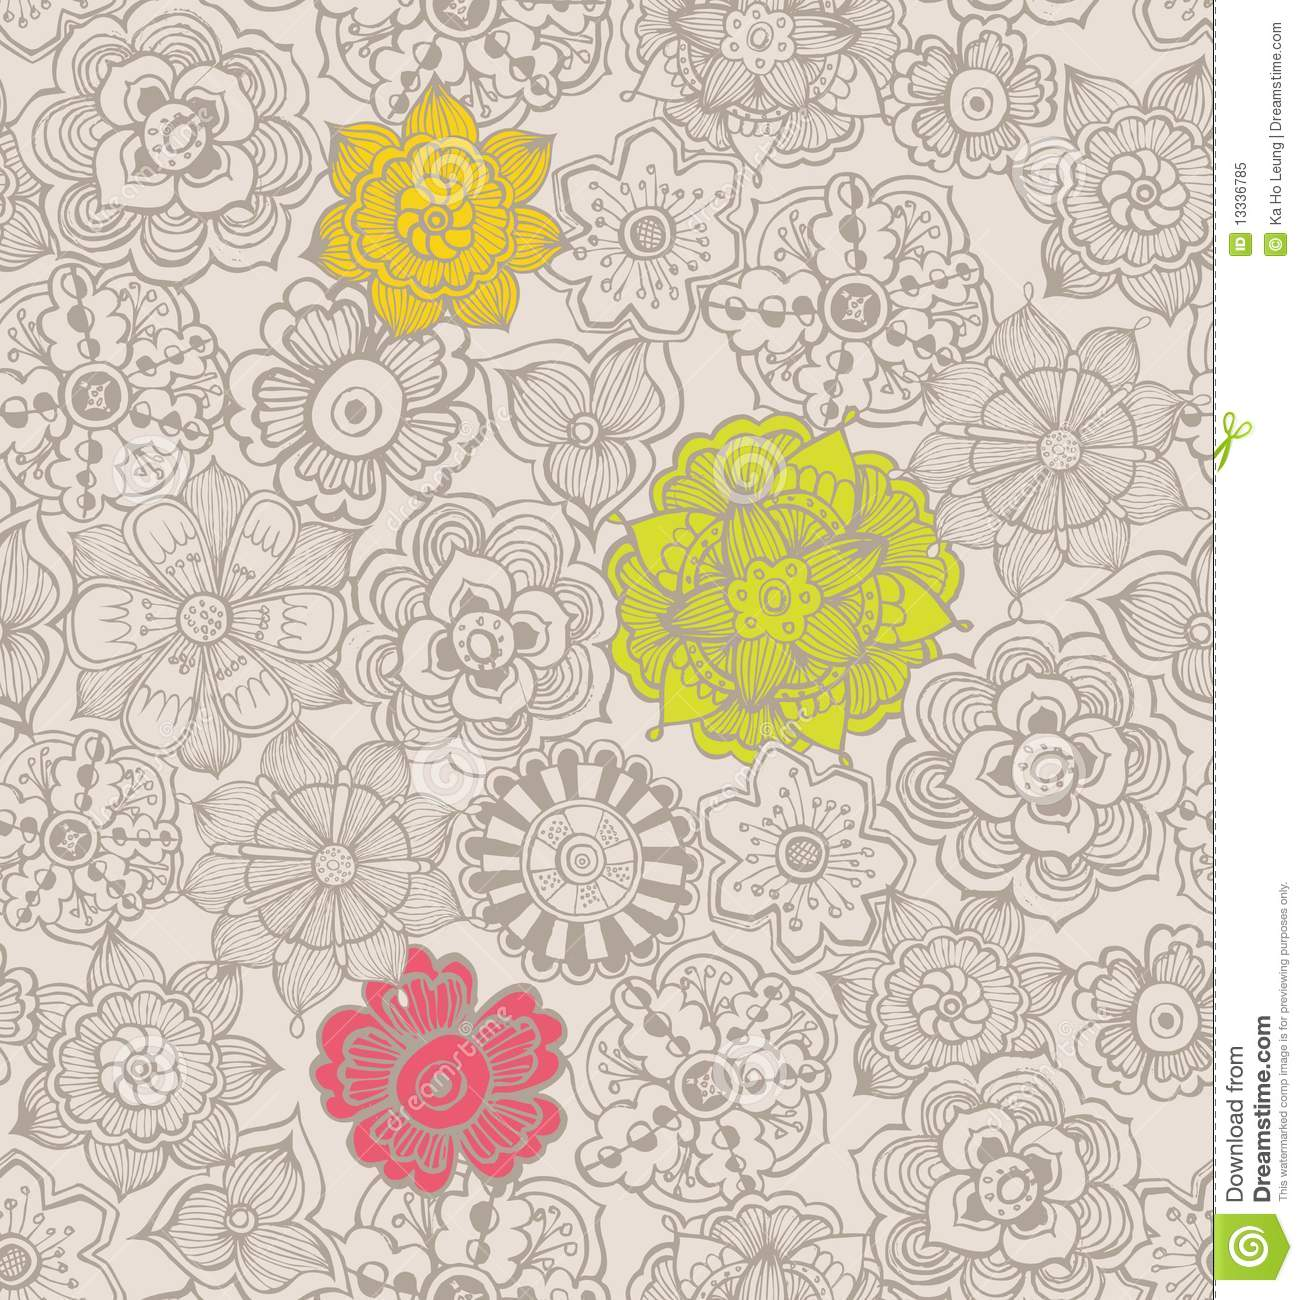 Very Free abstract floral pattern